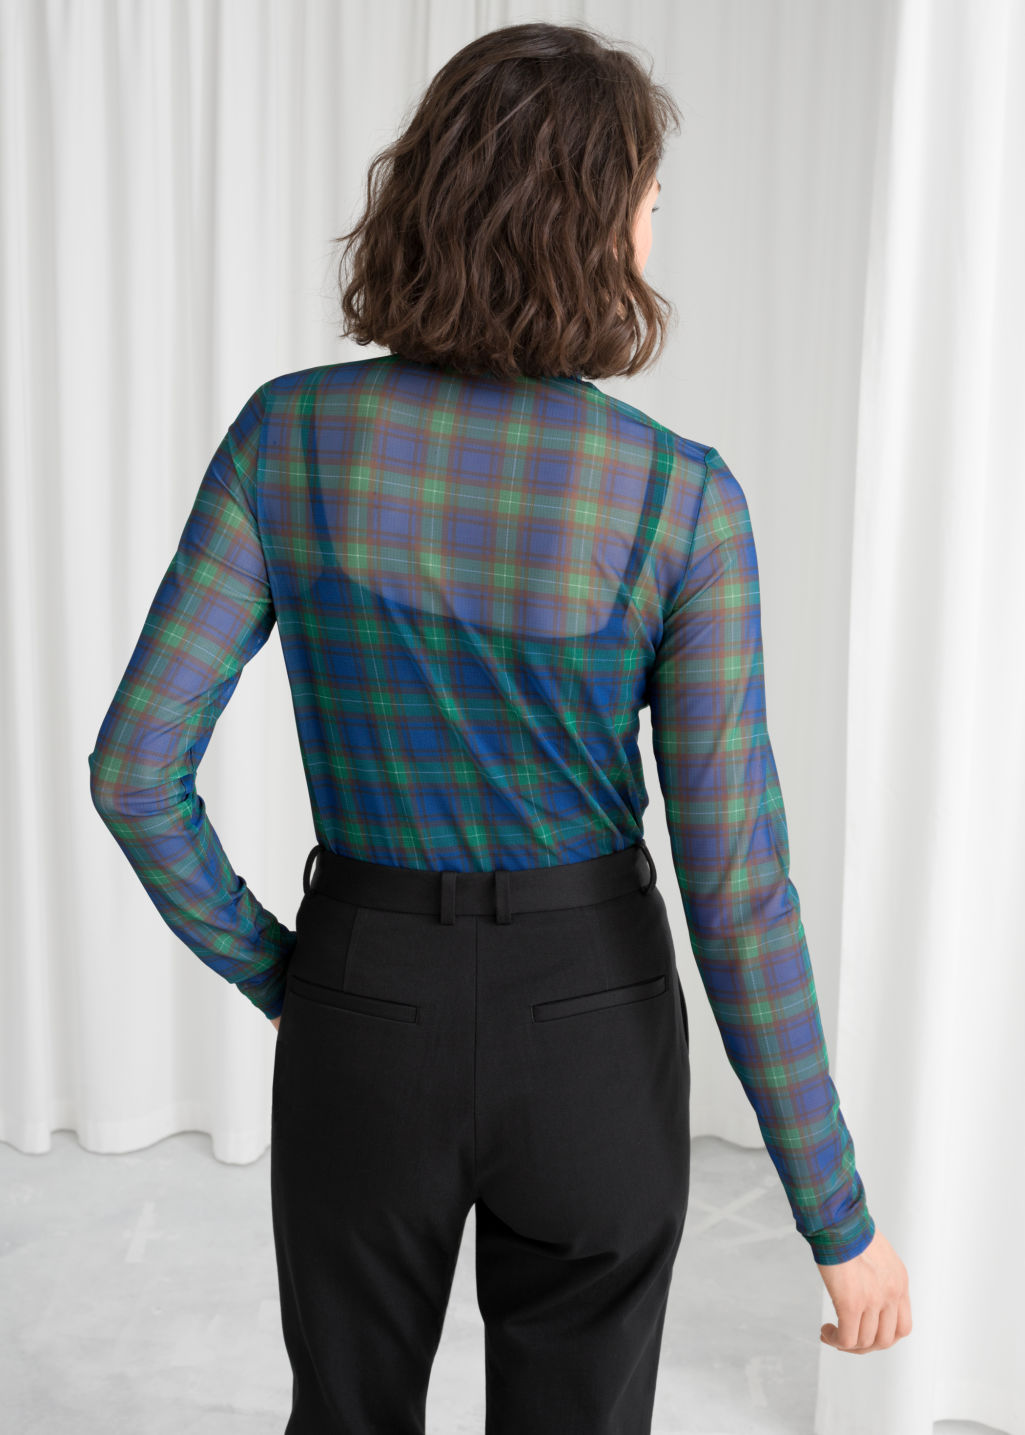 b369efa4132c2c Sheer Mesh Plaid Turtleneck - Plaid - Long Sleeve Tops -   Other Stories